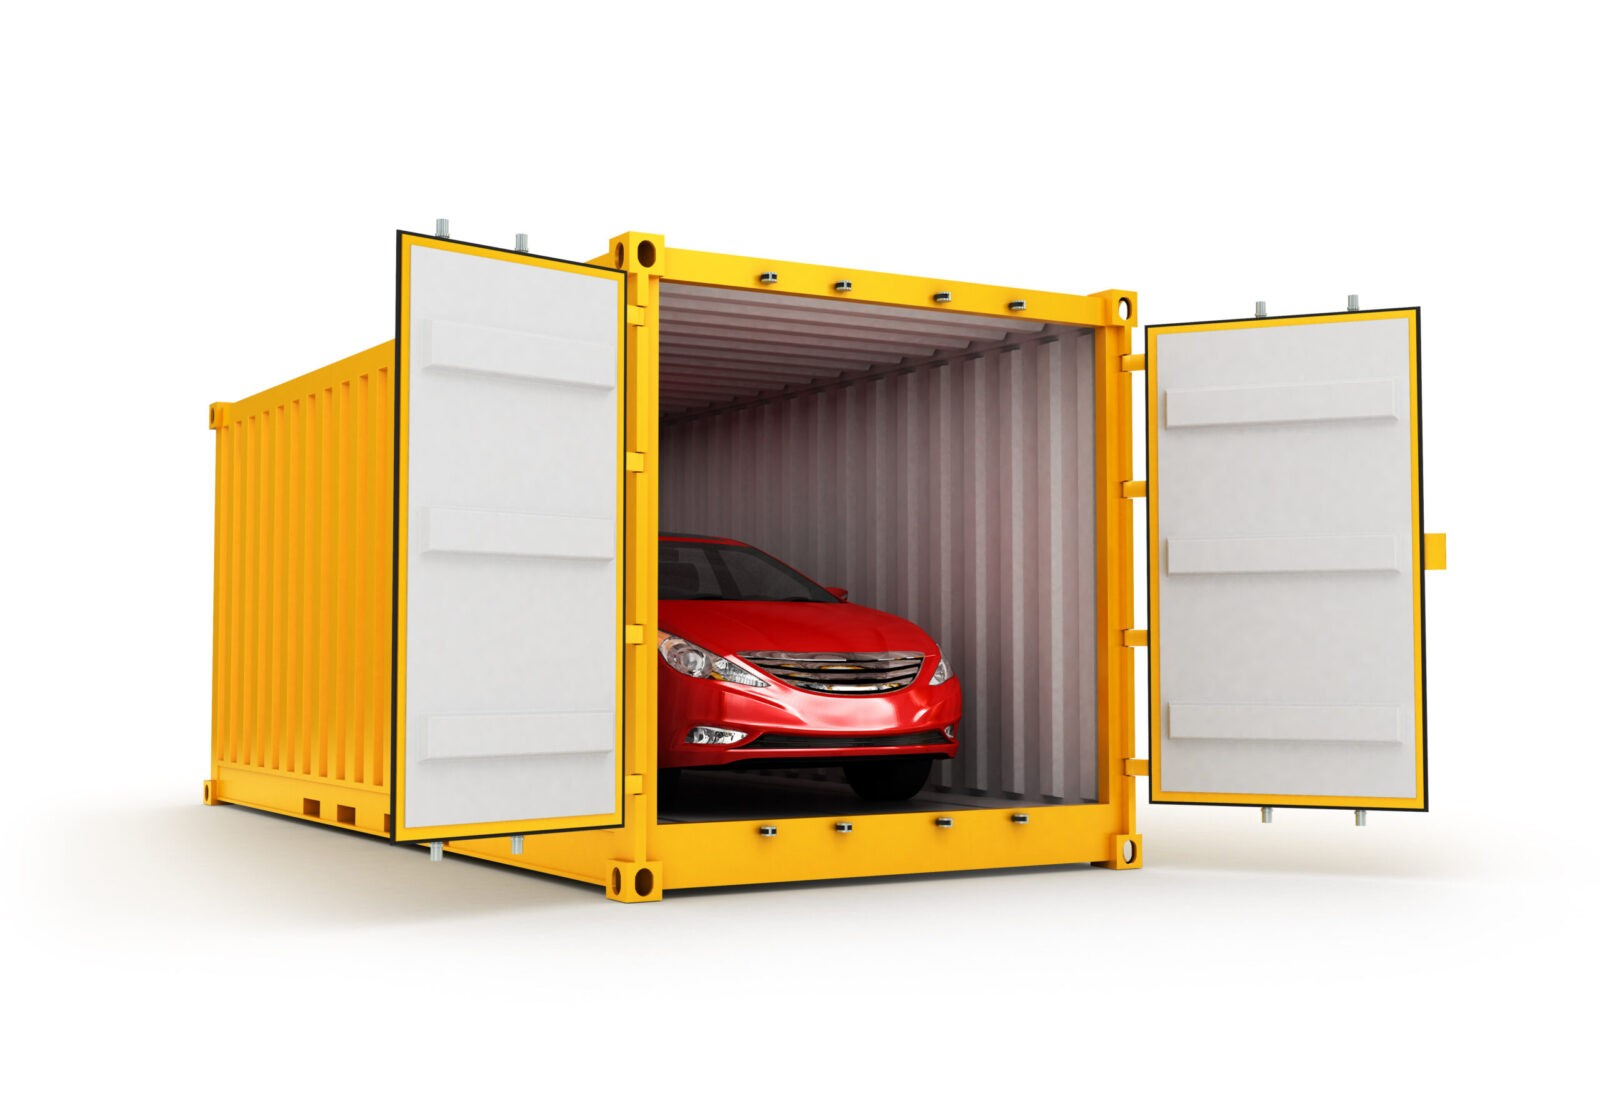 Car in an International Shipping Container